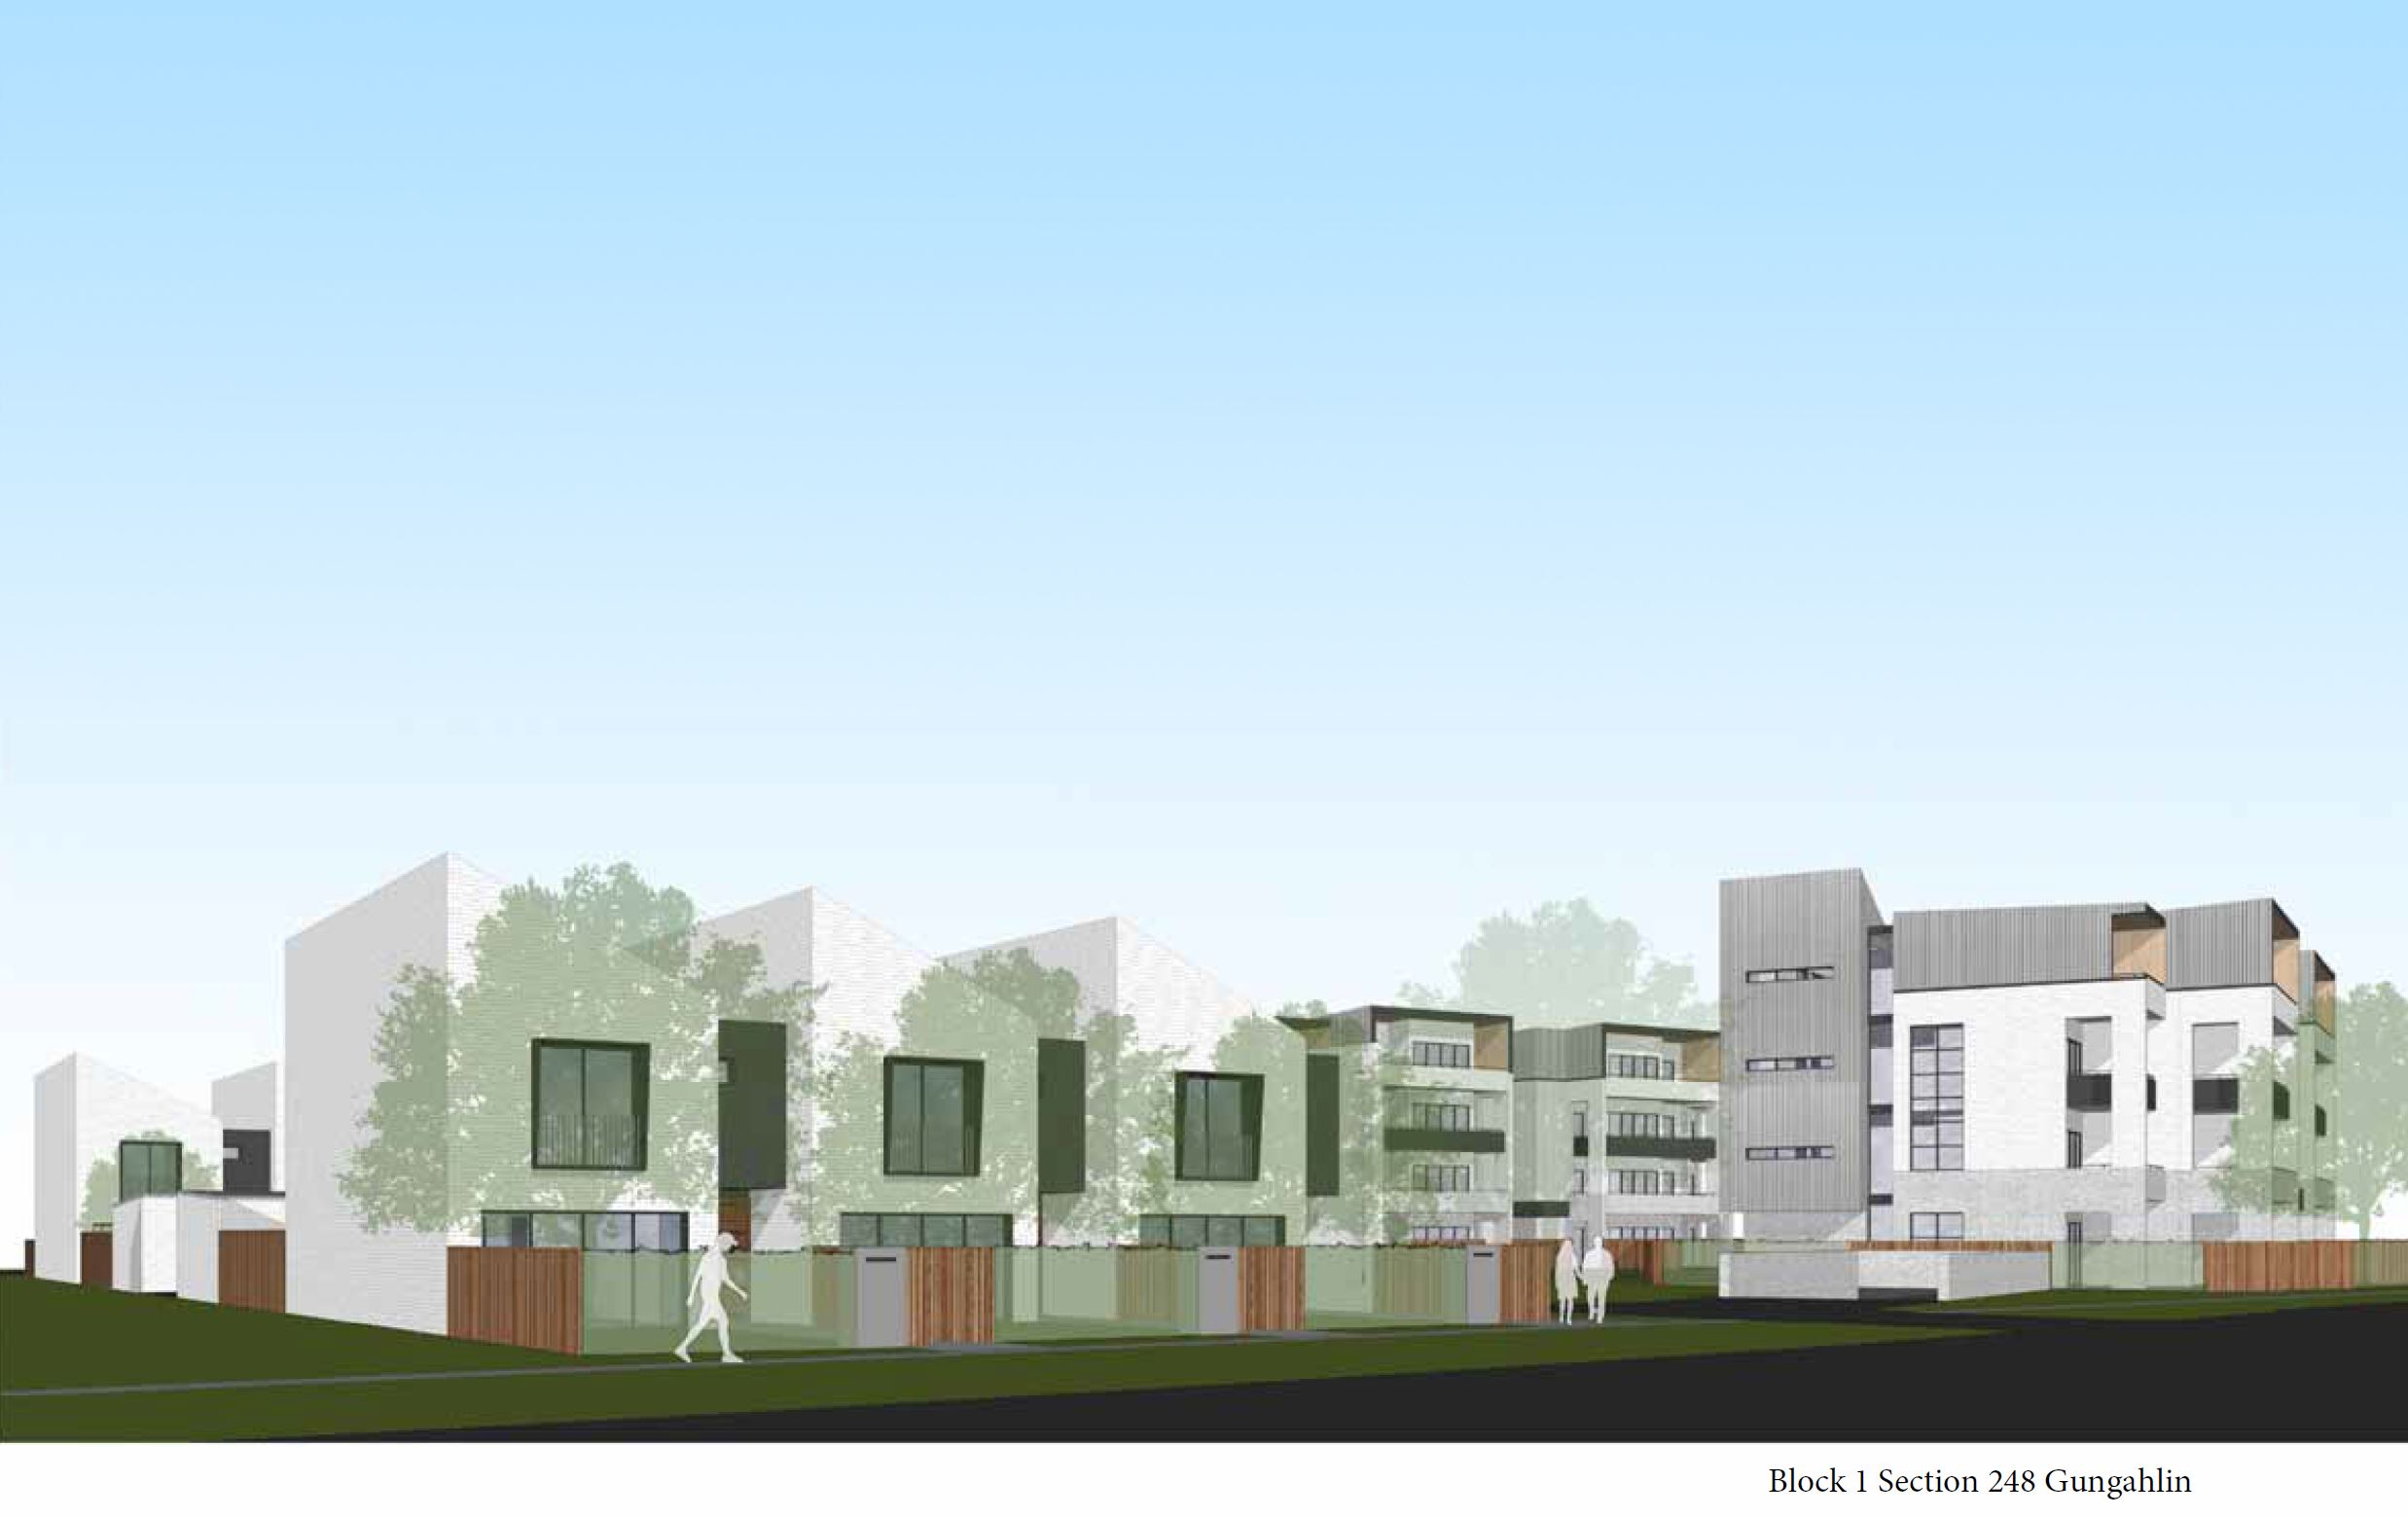 Public Housing Renewal - Gungahlin Town Centre